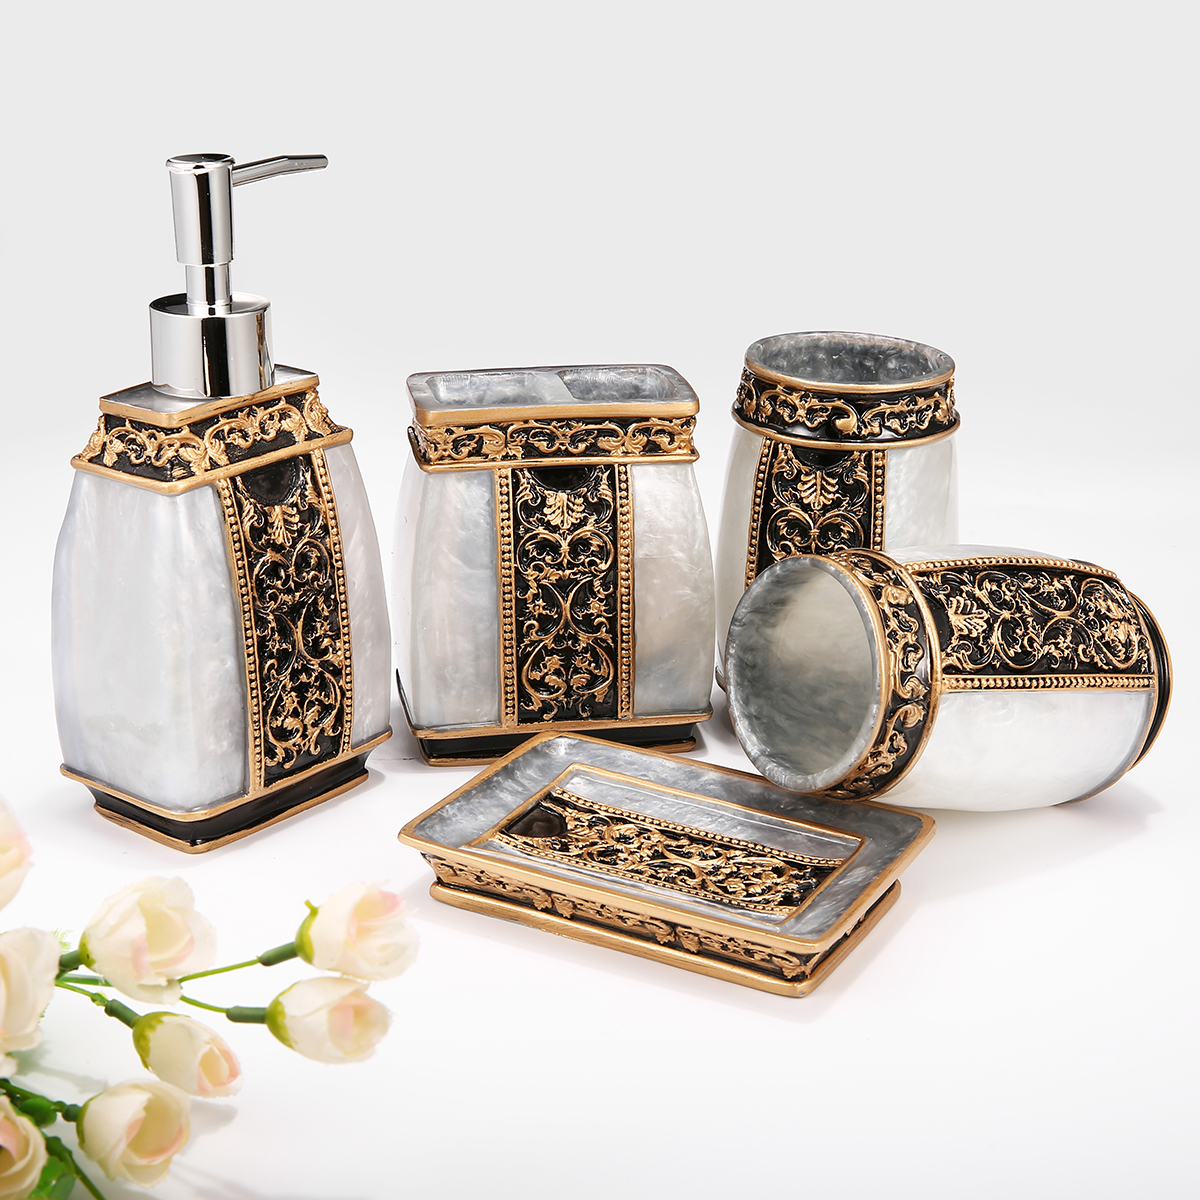 Bathroom Dispenser Set Us 37 34 49 Off Resin 5pcs Bathroom Set Toothpaste Cup Tumbler Toothbrush Holder Soap Dish Dispenser Set Gold Silver Bathroom Accessories In